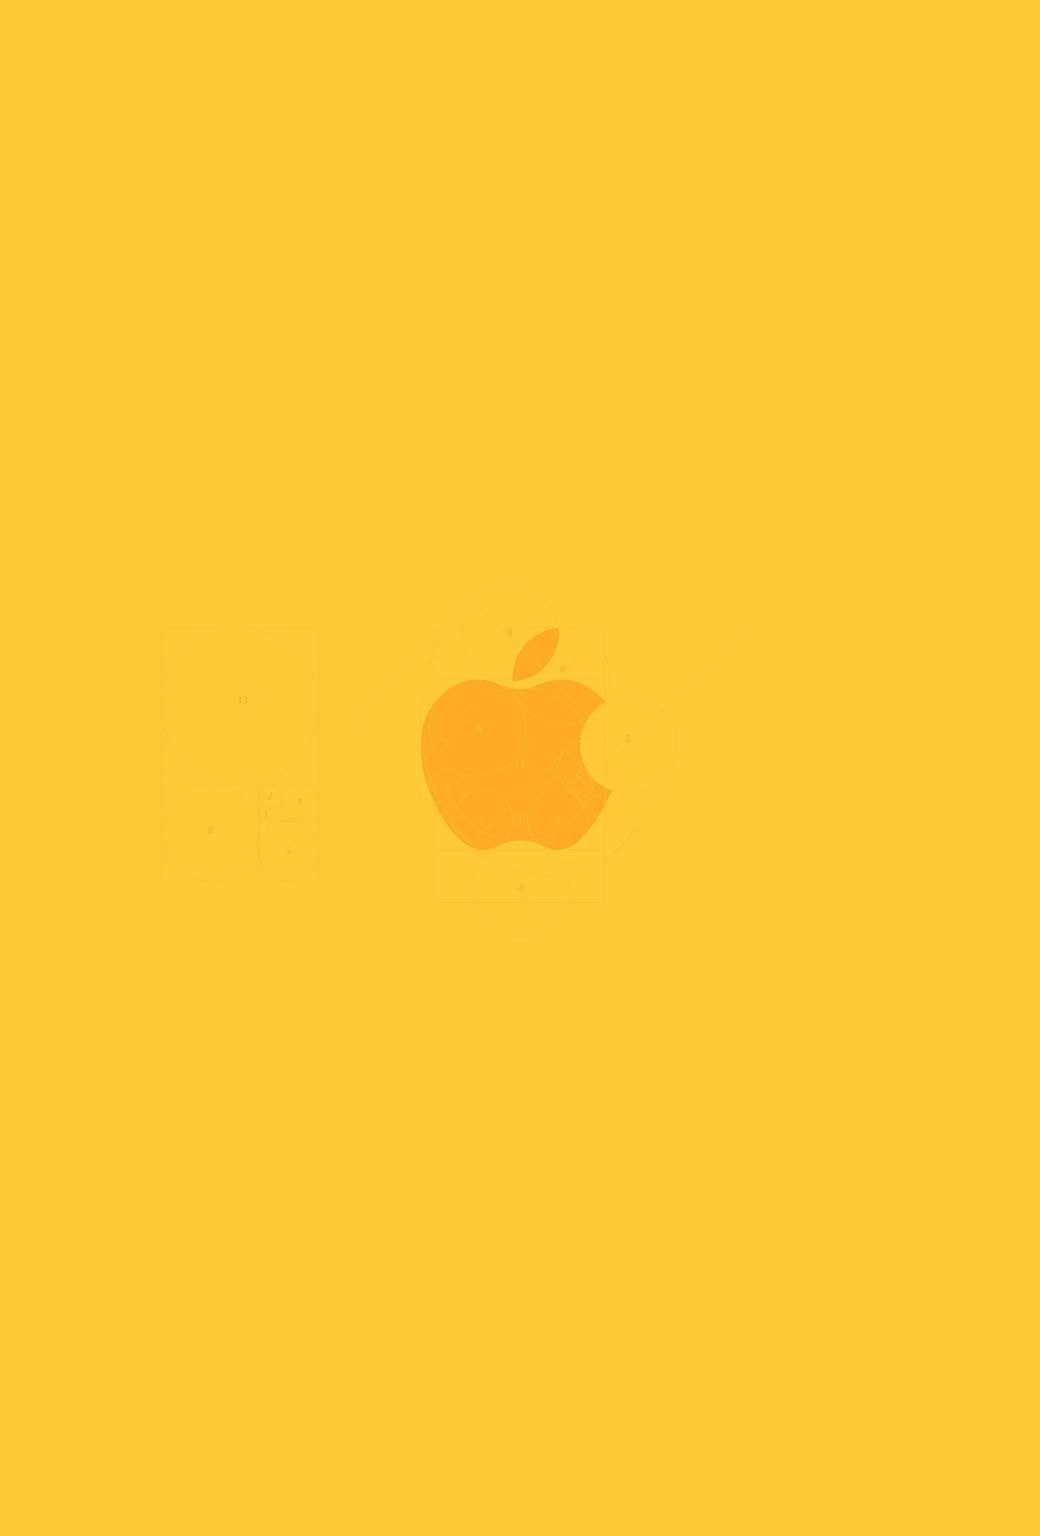 Yellow Wallpaper For Iphone Iphone Wallpaper Yellow Iphone Wallpaper Apple Logo Wallpaper